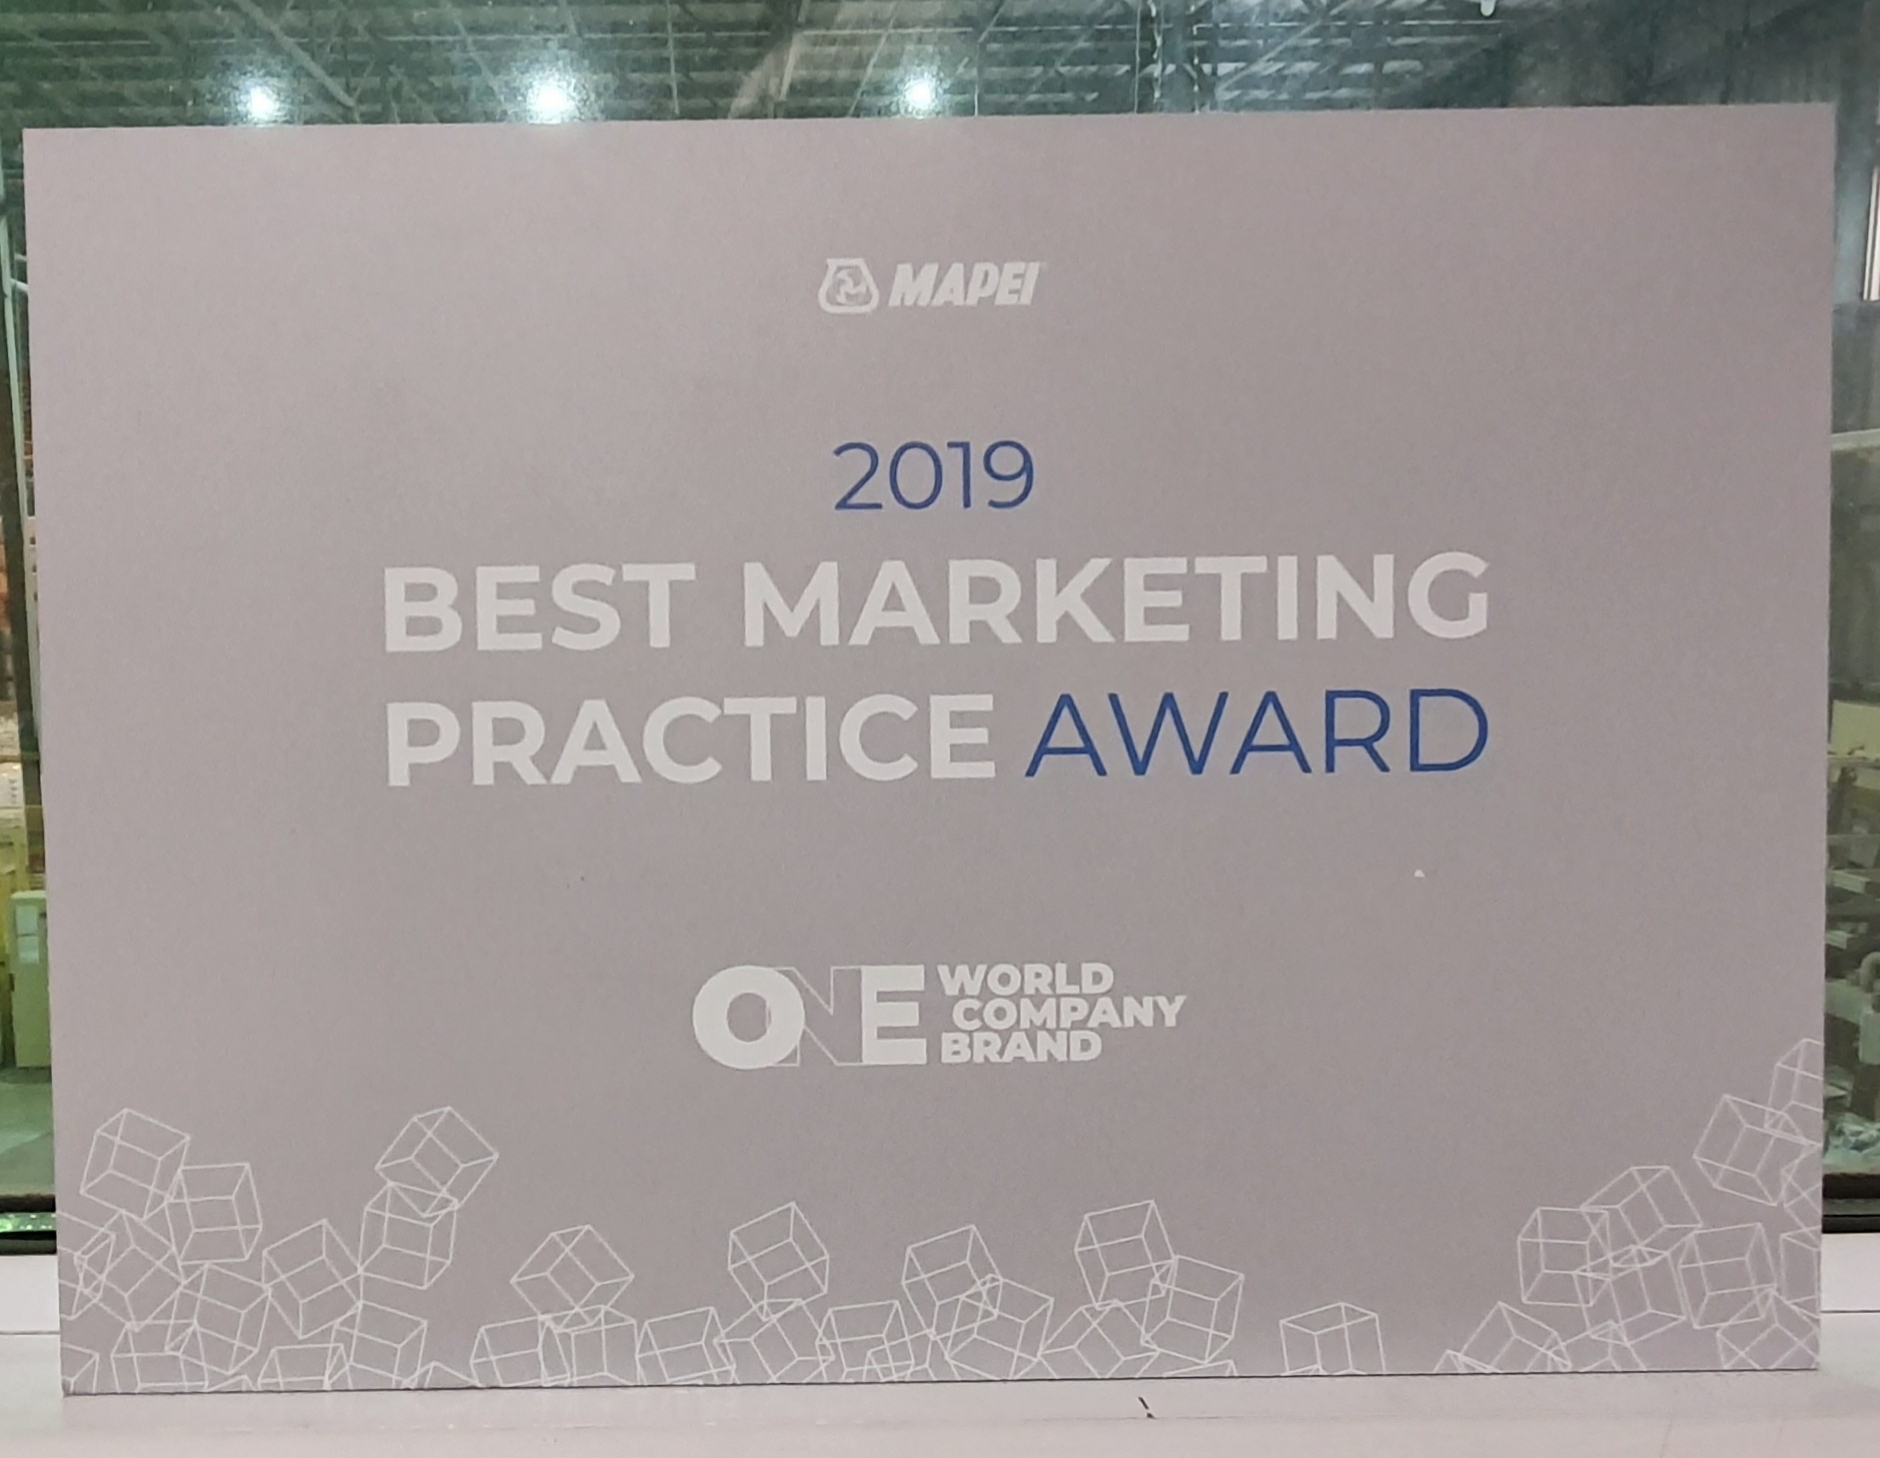 Best Marketing Practice Award